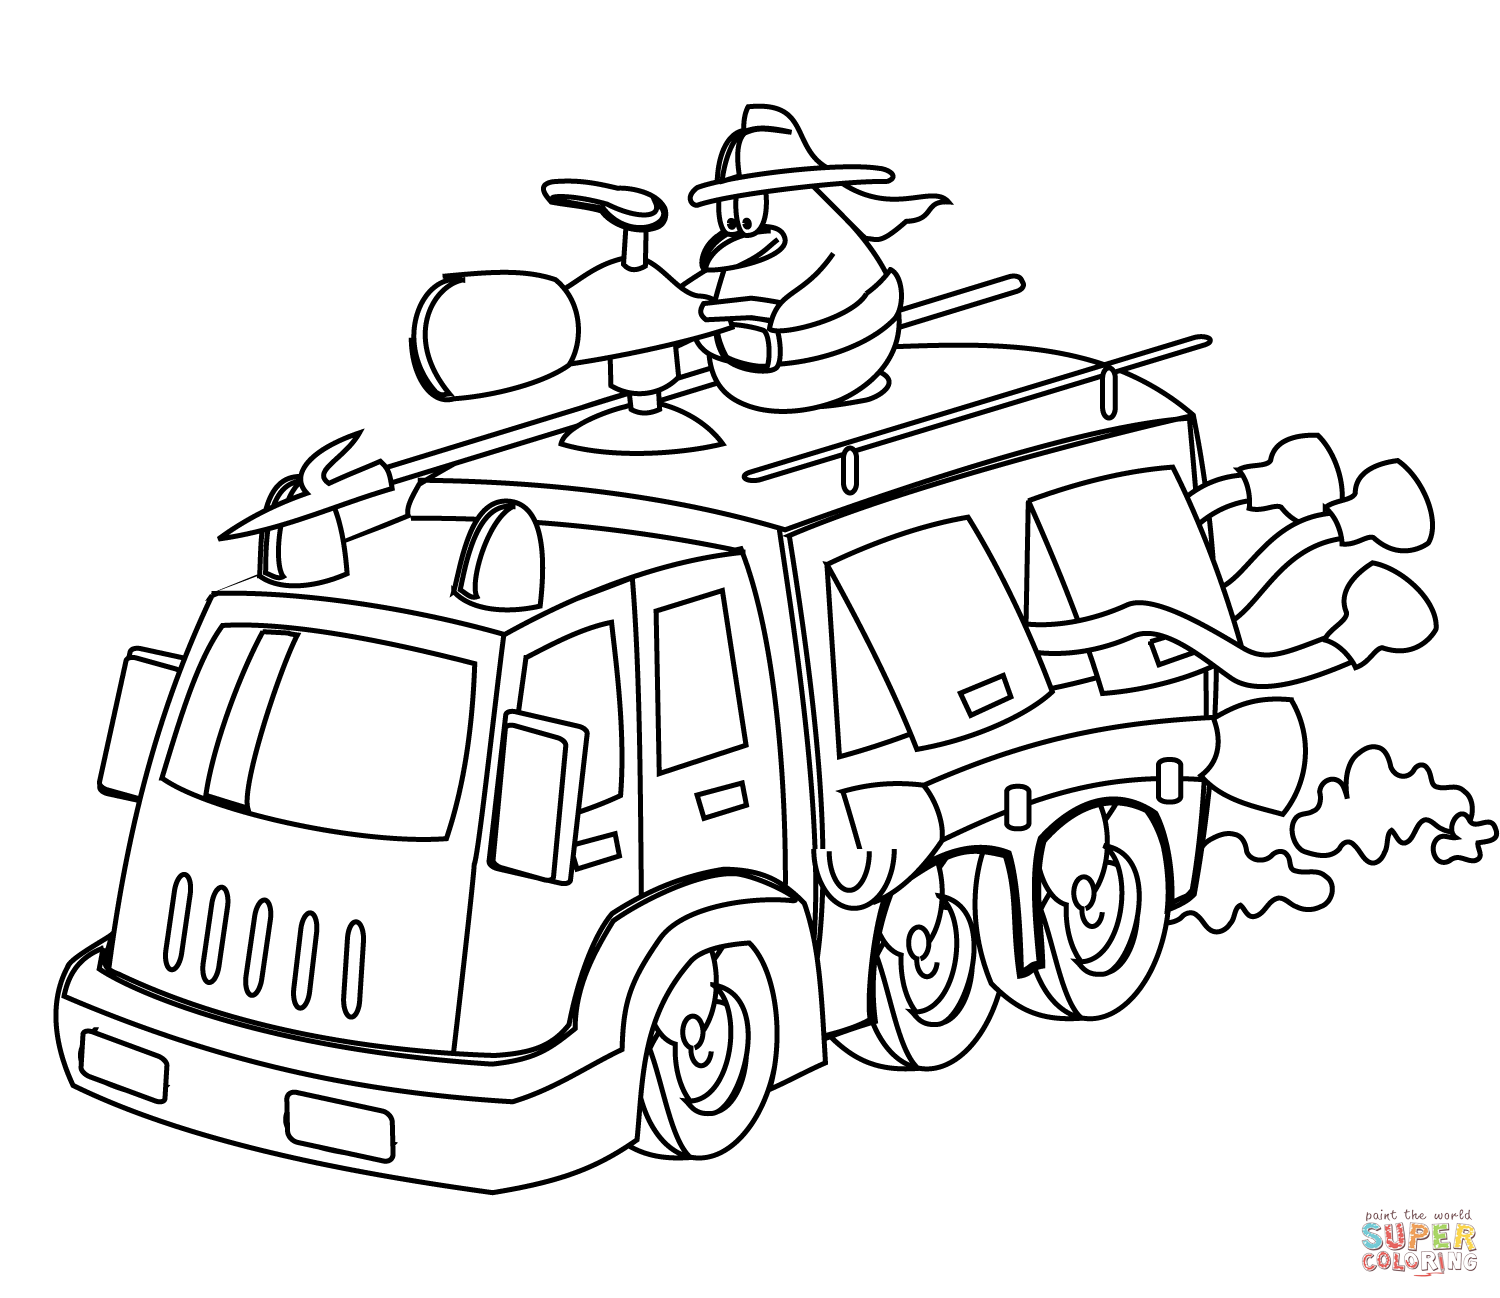 coloring page fire truck fire truck coloring pages coloring pages to download and page truck coloring fire 1 1